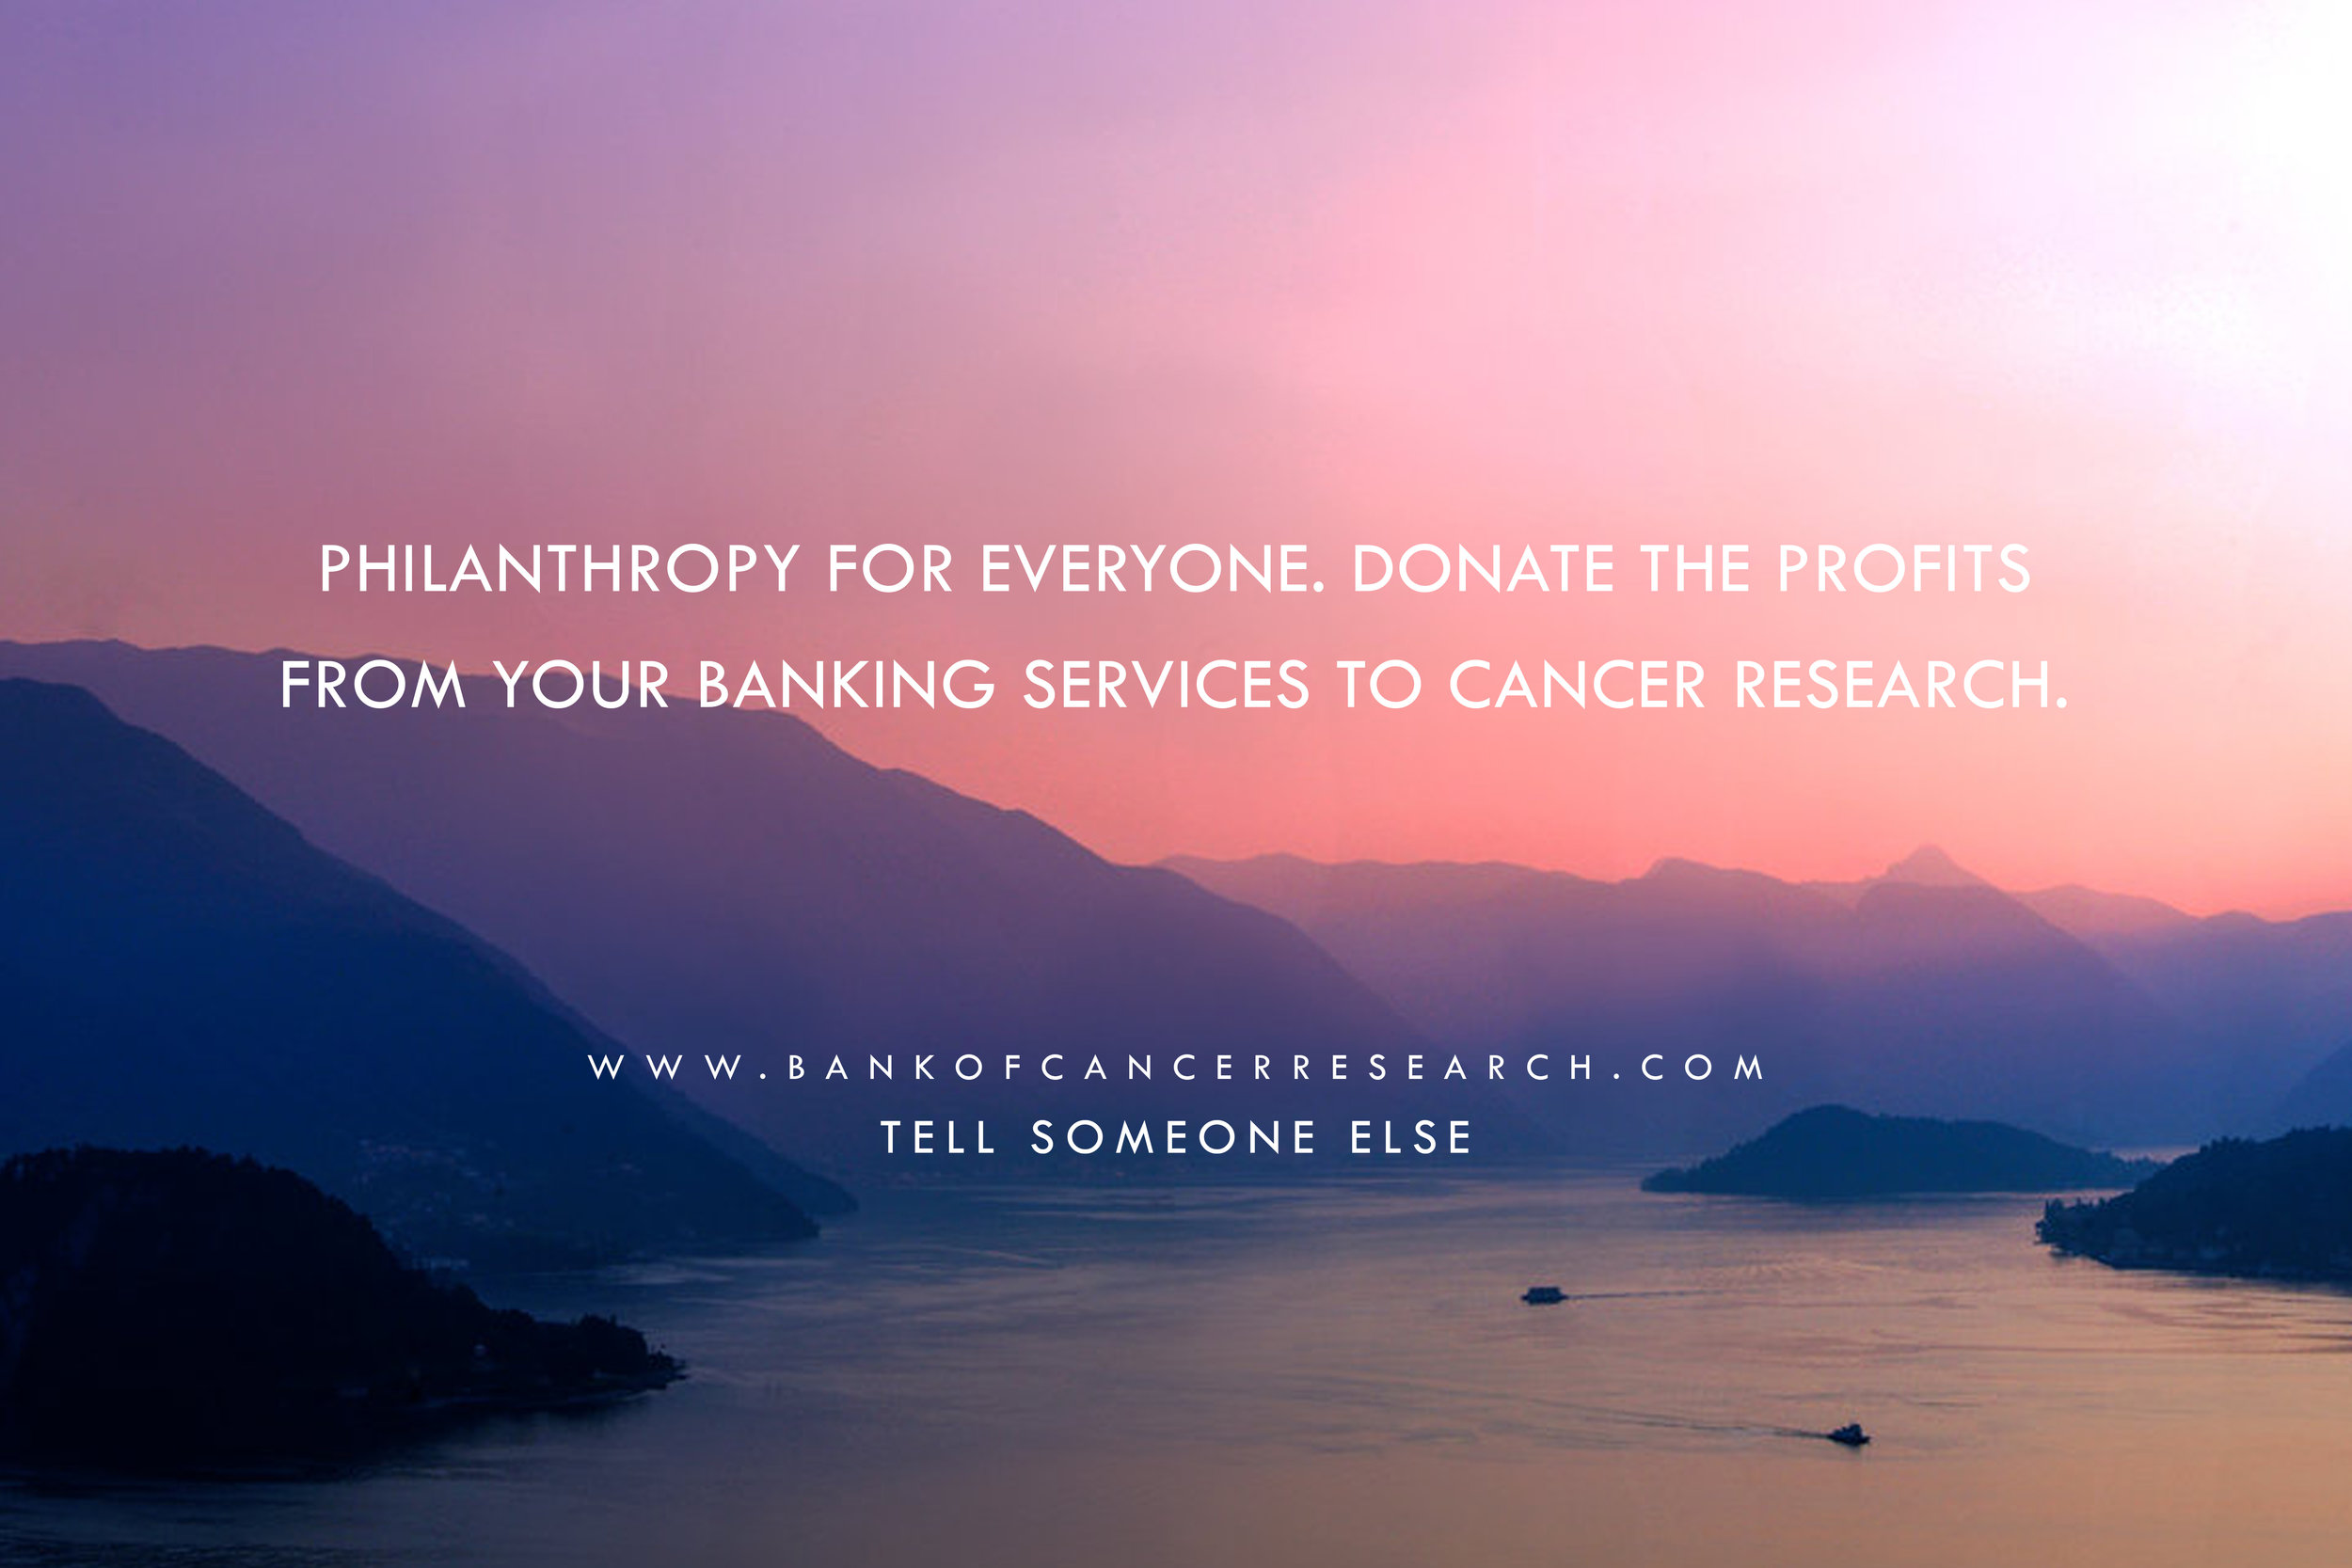 Bank of Cancer Research Philanthropy for Everyone